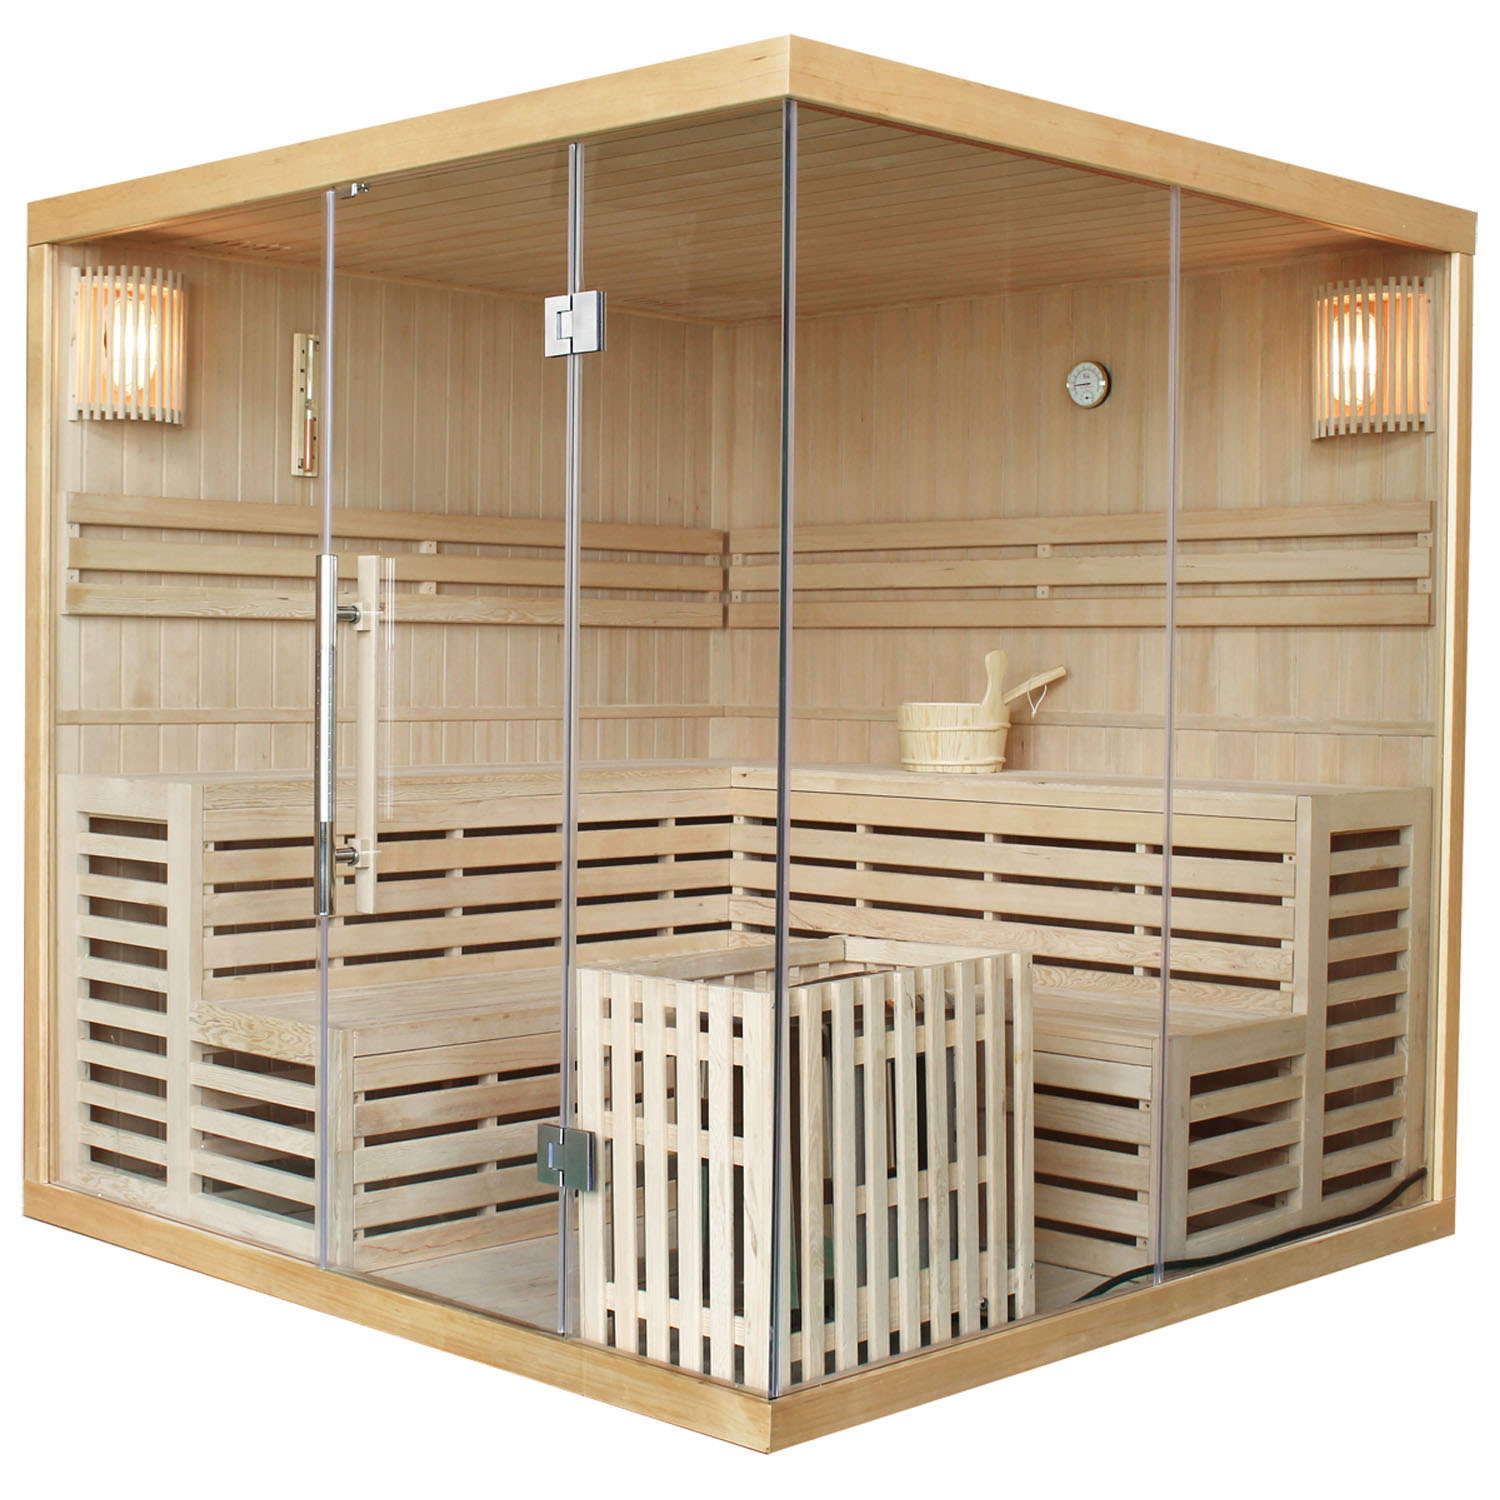 saunakabine massivholz sauna ecksauna harvia traditionell saunaofen artsauna ebay. Black Bedroom Furniture Sets. Home Design Ideas